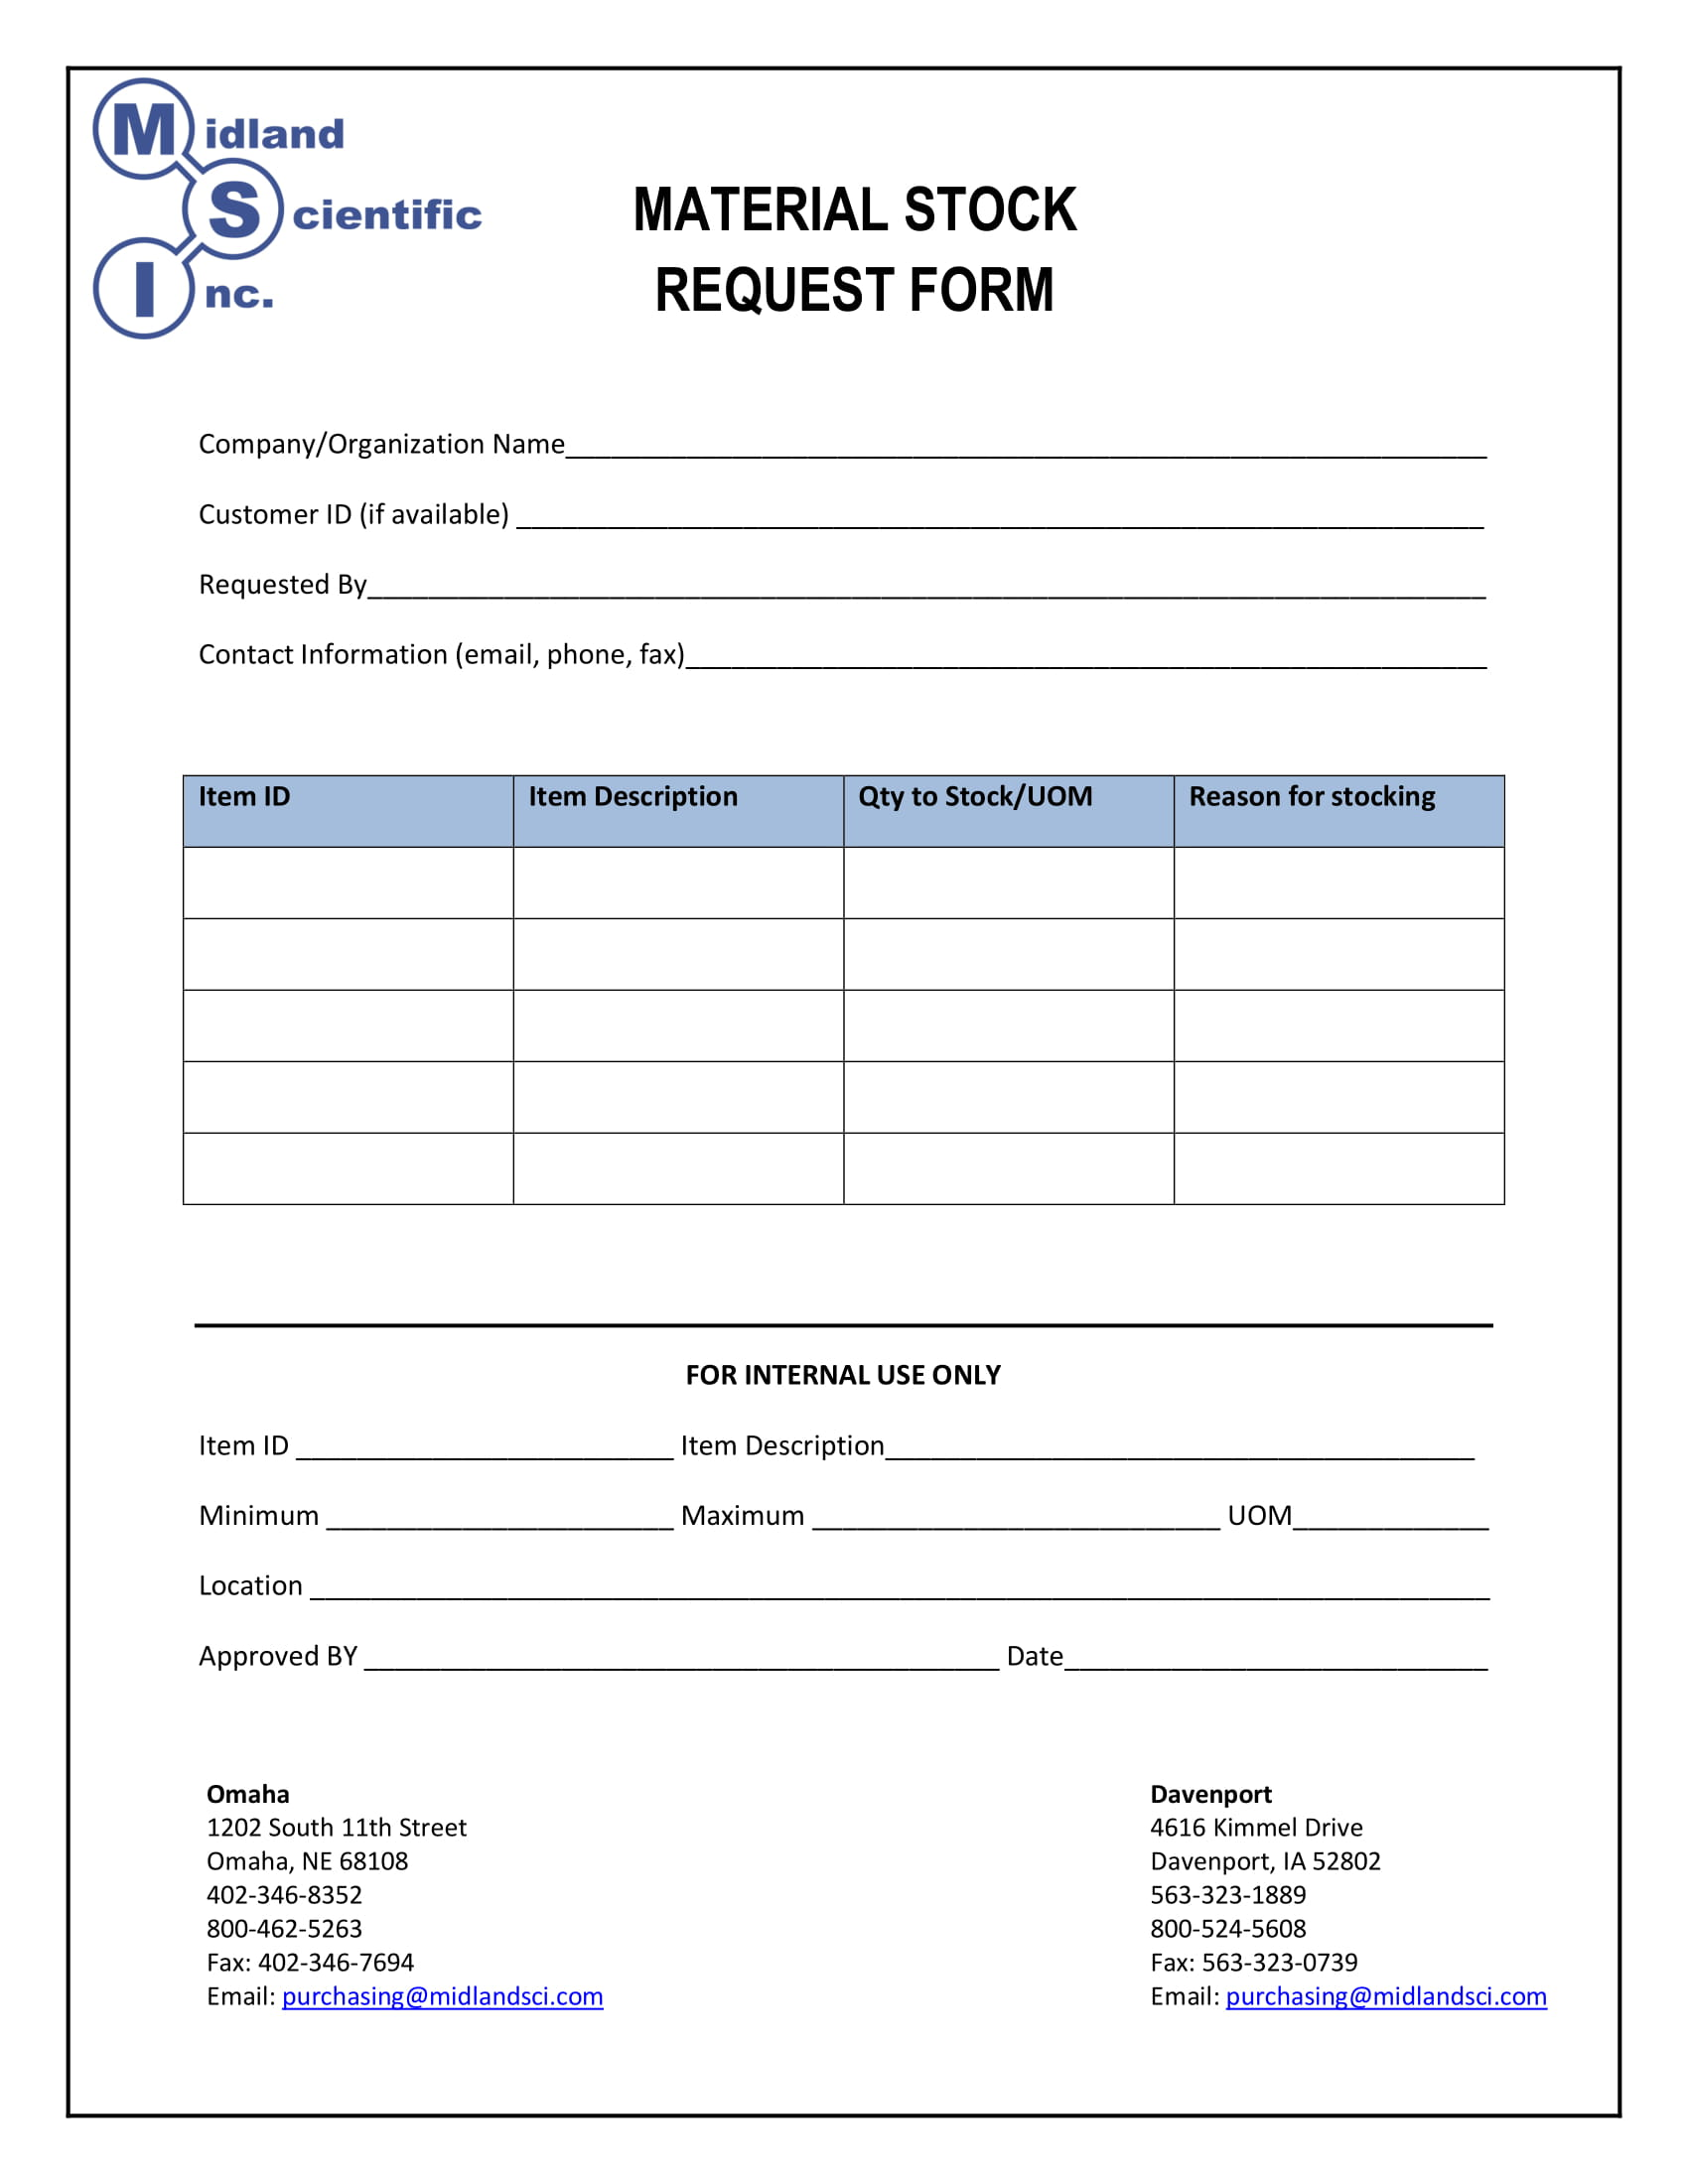 stock request form template - material request form design templates